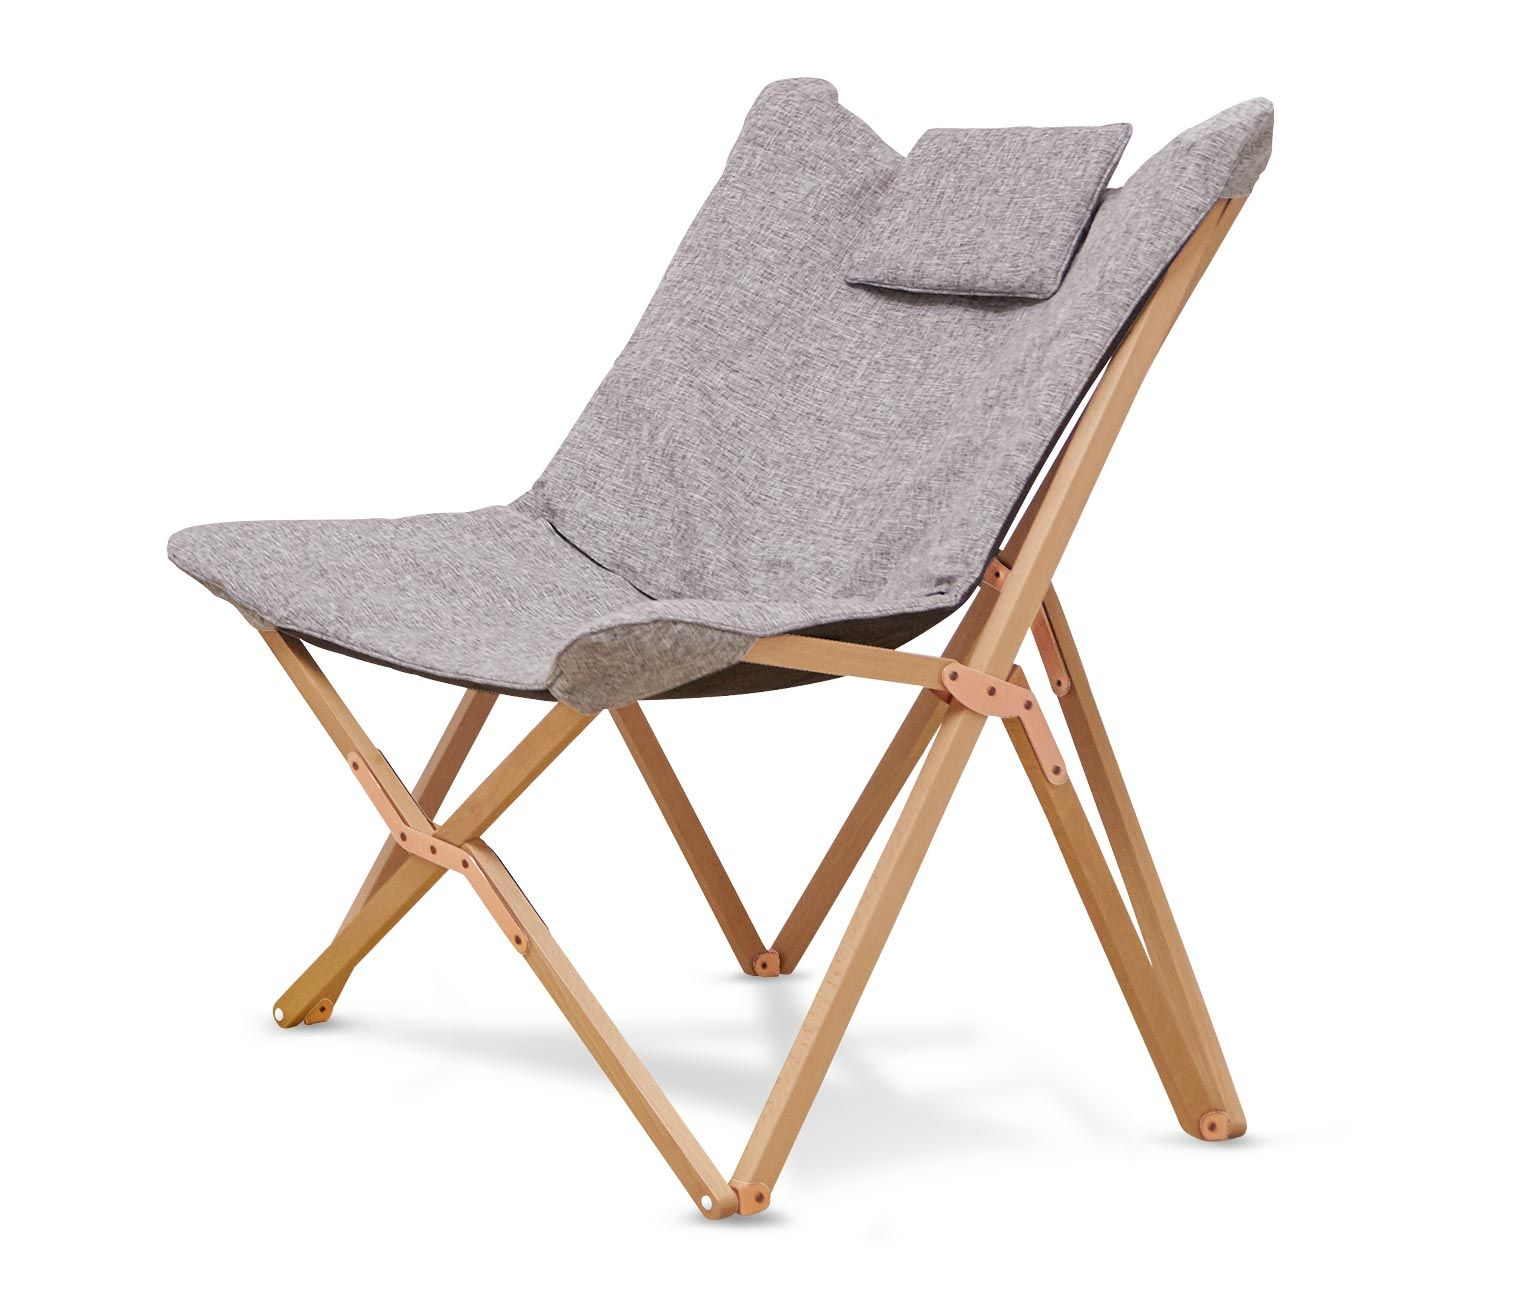 Daybed Outdoor Tchibo Lounge Szék Living Room Outdoor Chairs Furniture és